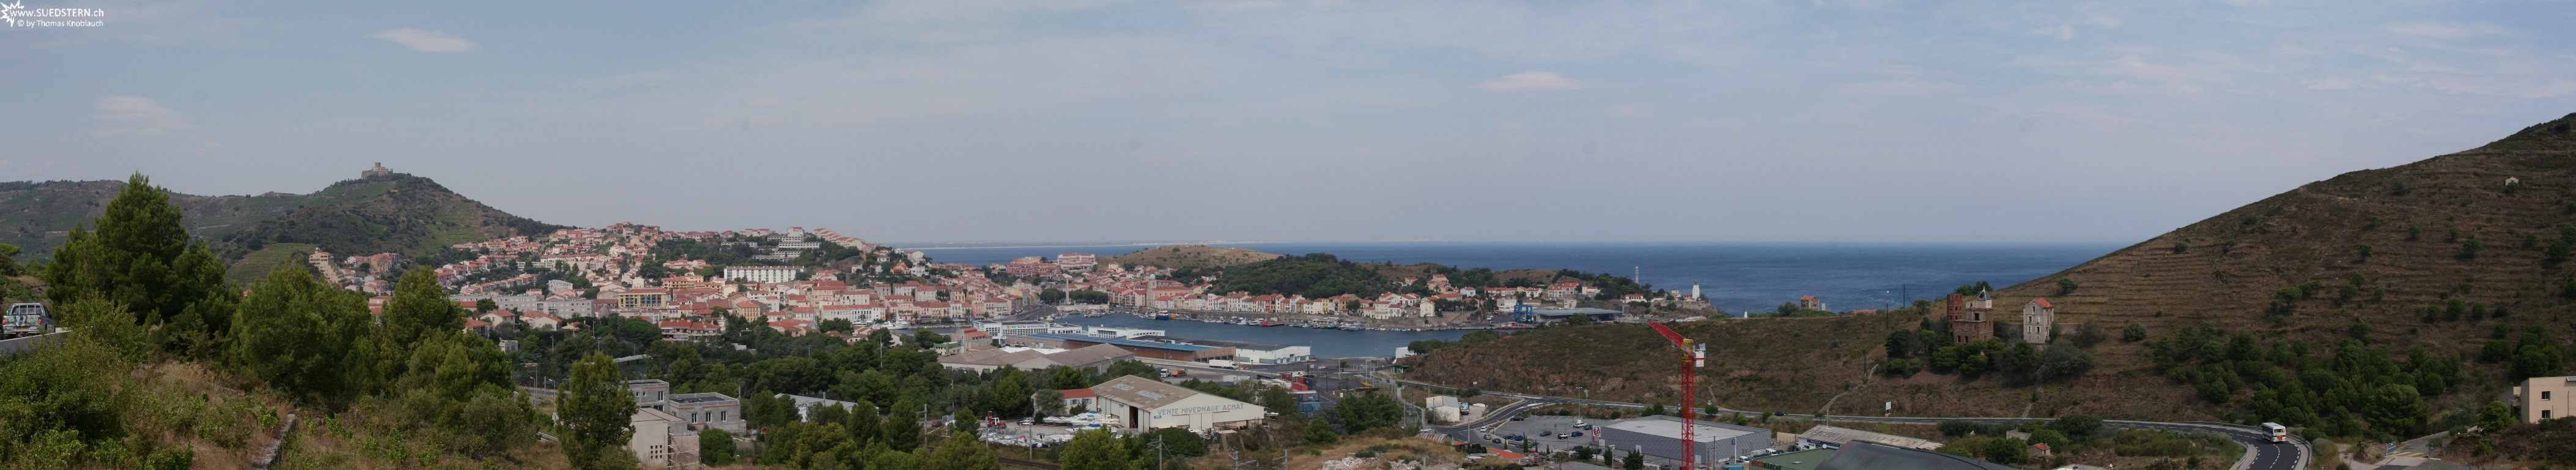 2008-09-03 - Port Vendres, france